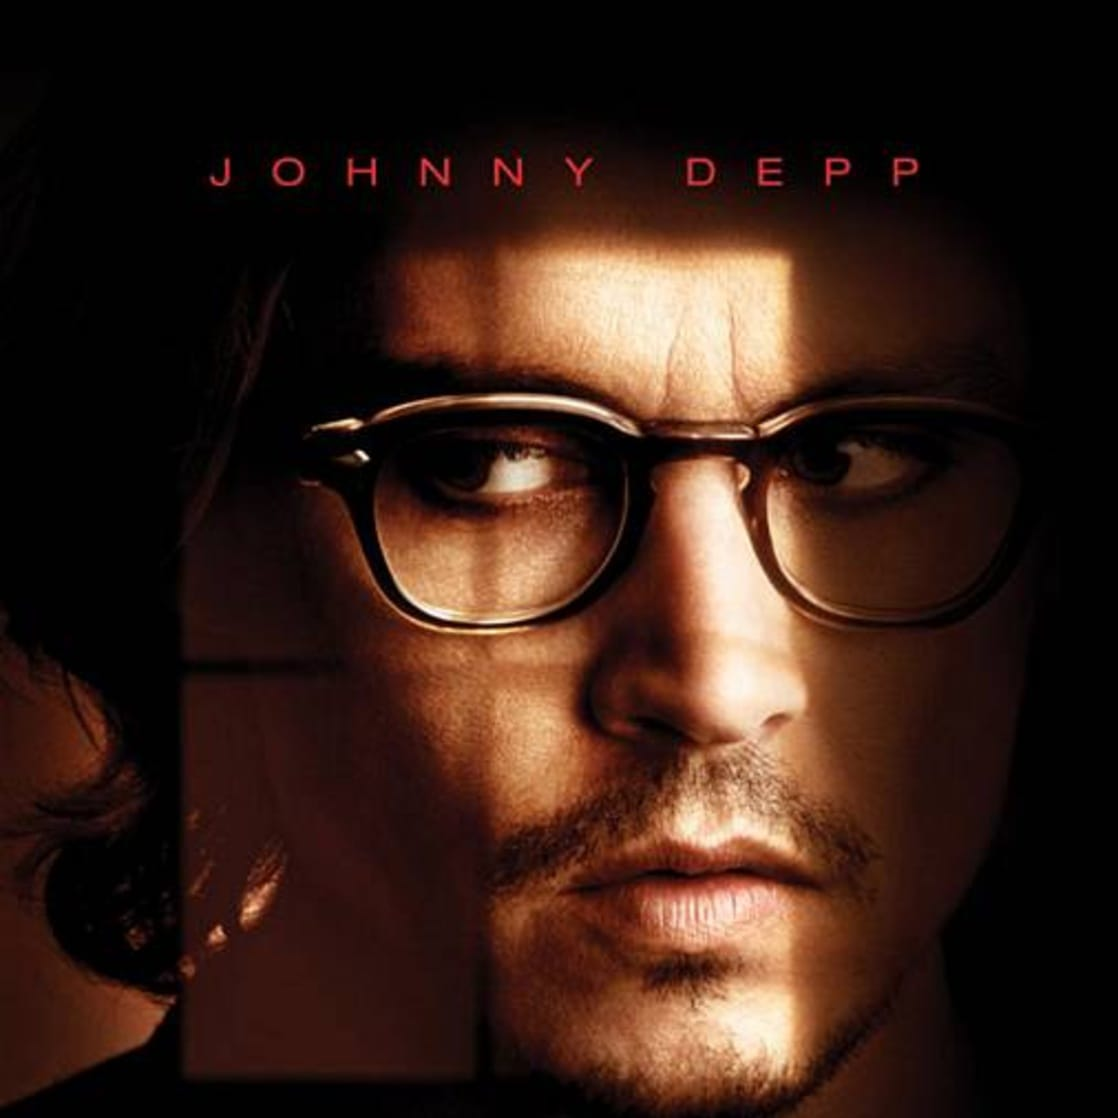 Astonishing Watch More Like Johnny Depp Movies List In Order Hairstyle Inspiration Daily Dogsangcom